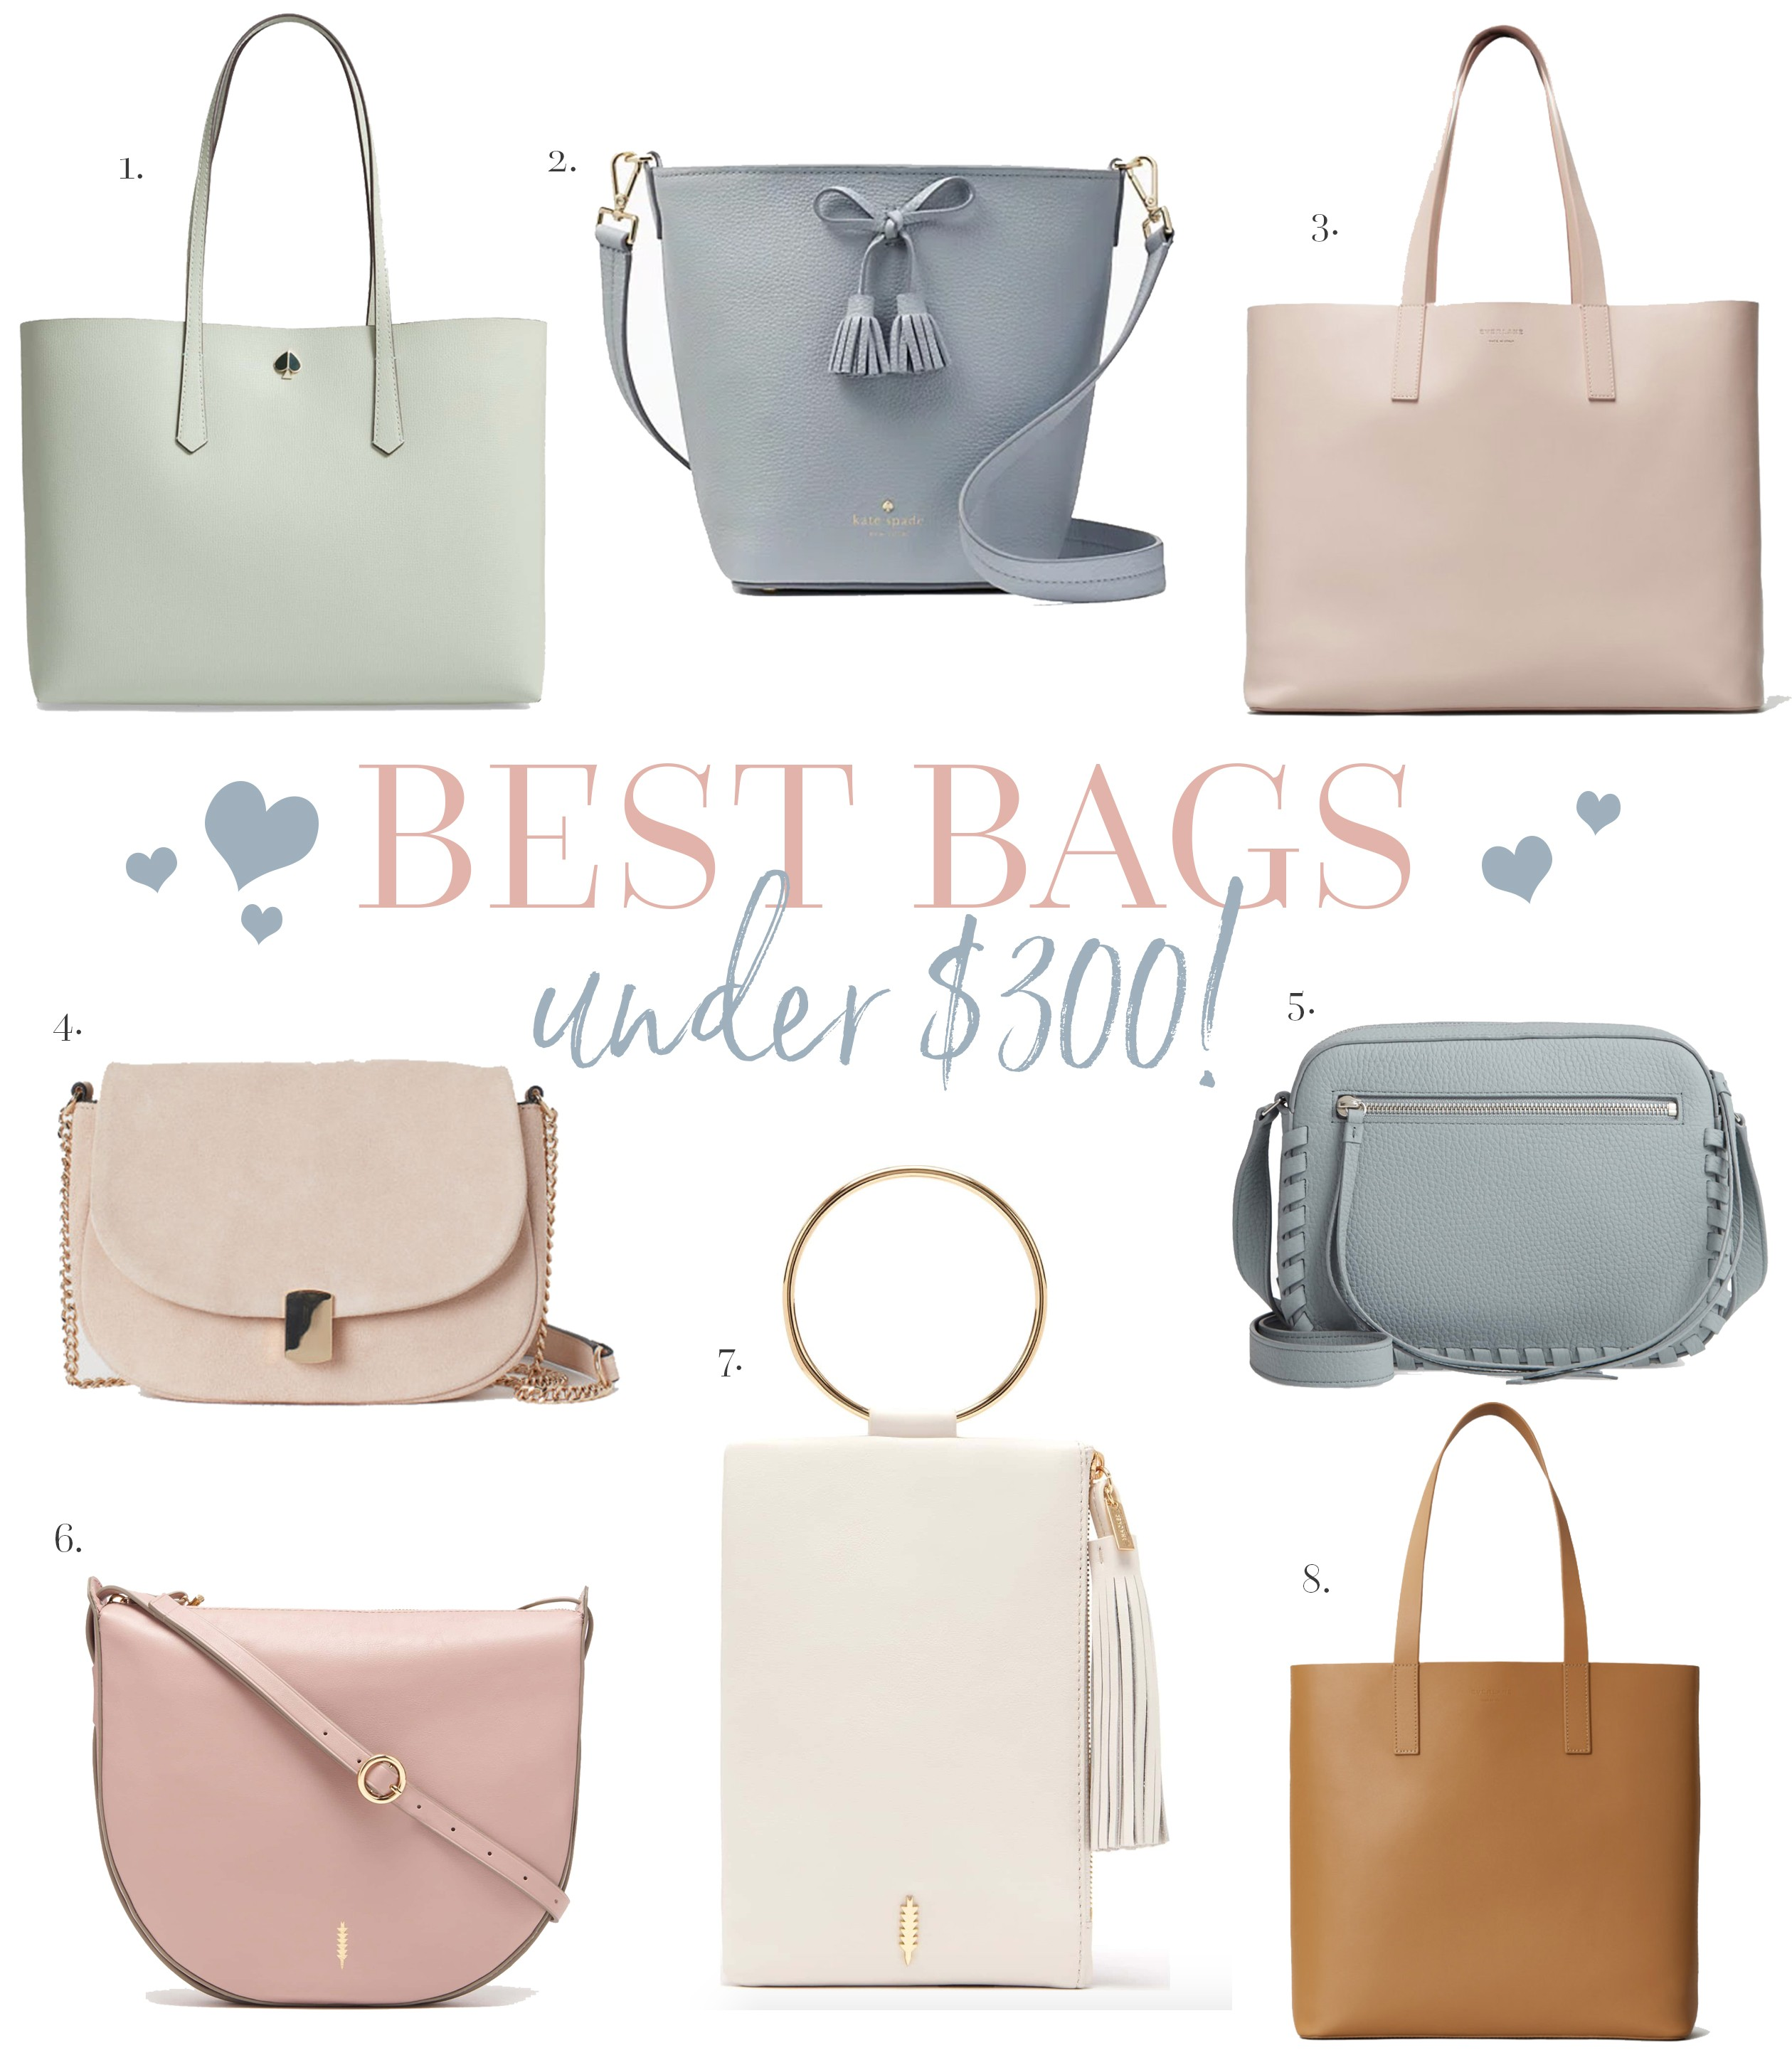 f8e95e6b8 Best Bags Under $300! - Chase Amie